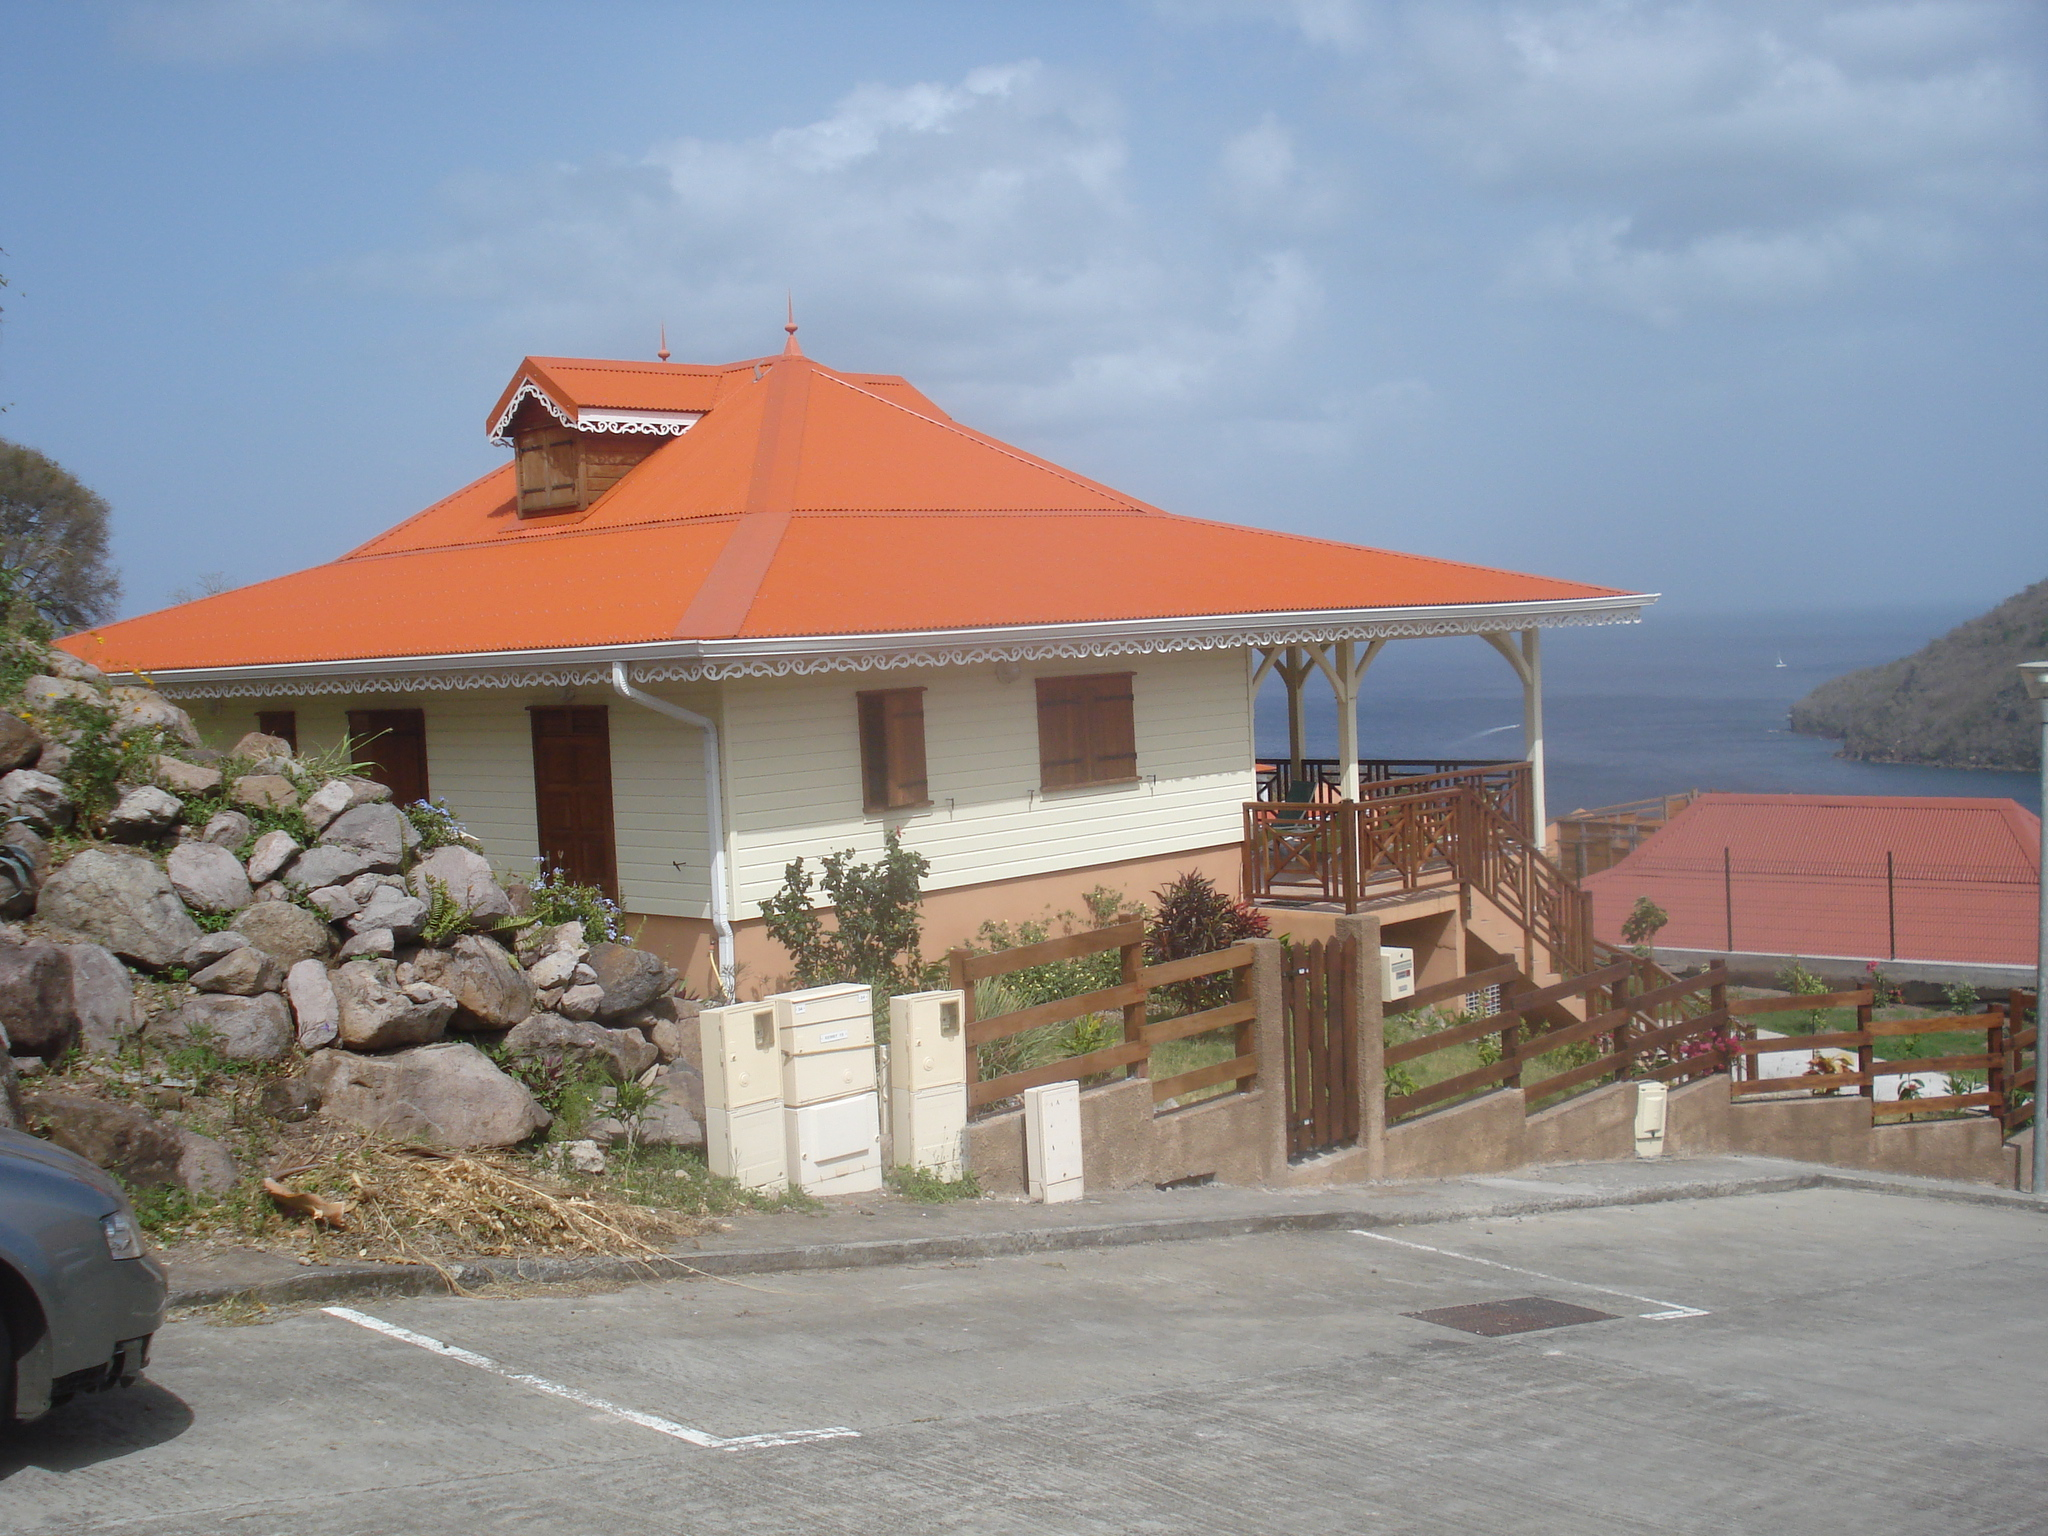 Maison cr ole vabre self catering les anses d 39 arlet for 972 martinique location maison